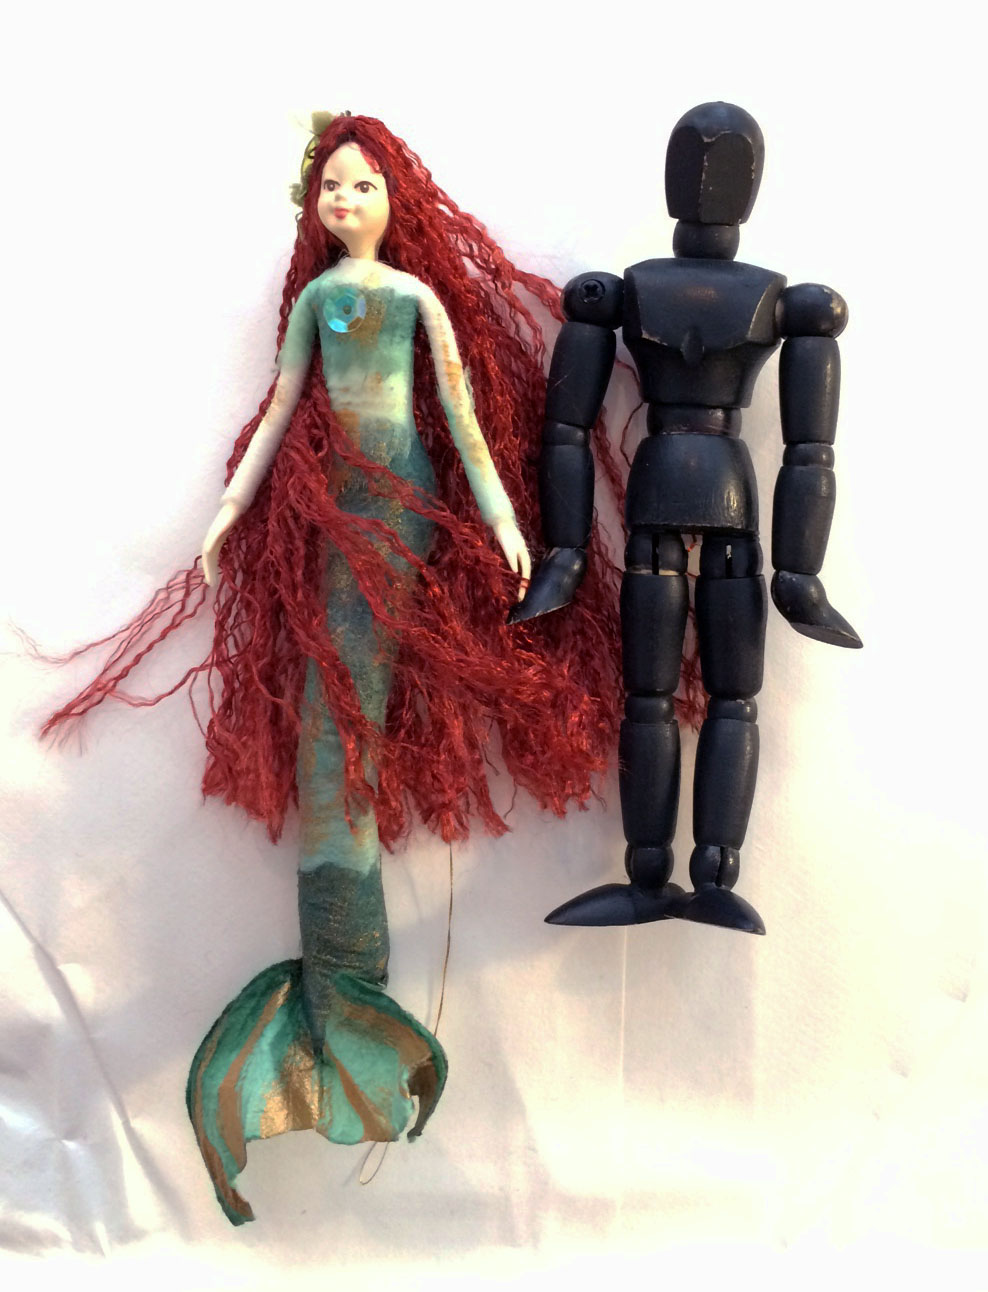 Redhead Mermaid Doll Ornament & Logo